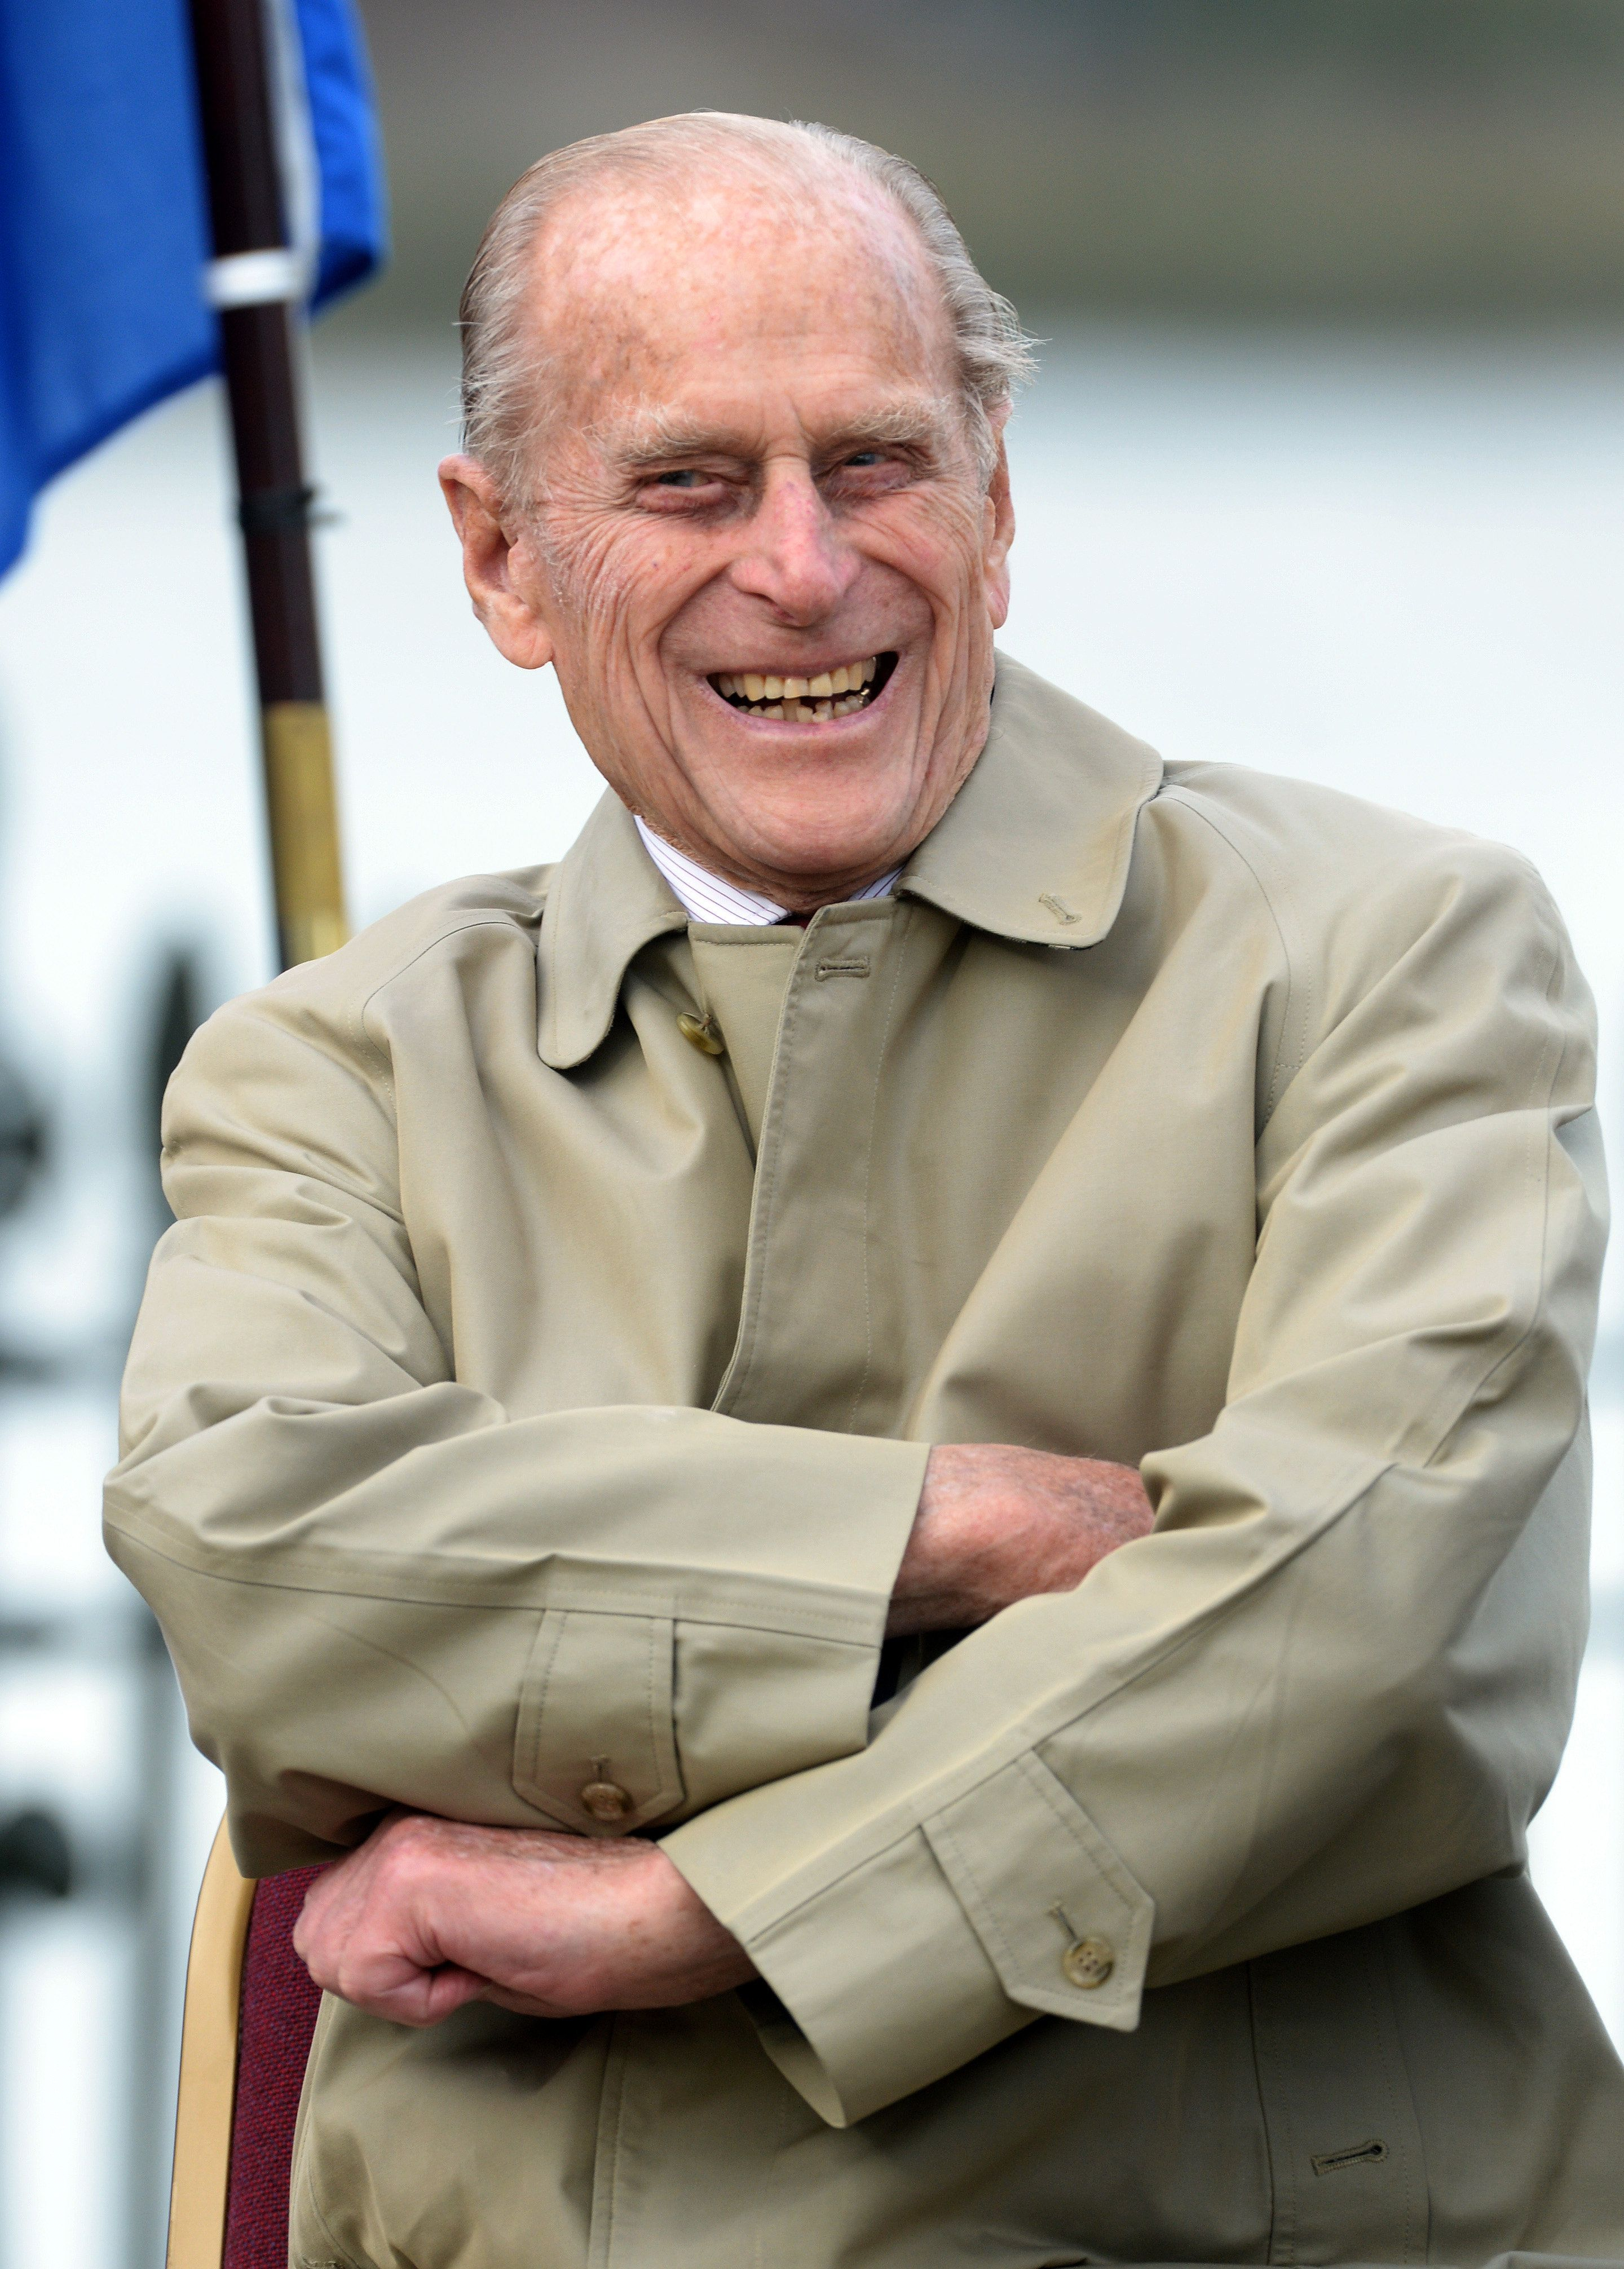 Prince Philip Reacts To Retirement Well-Wisher With An Absolutely Top-Notch Dad